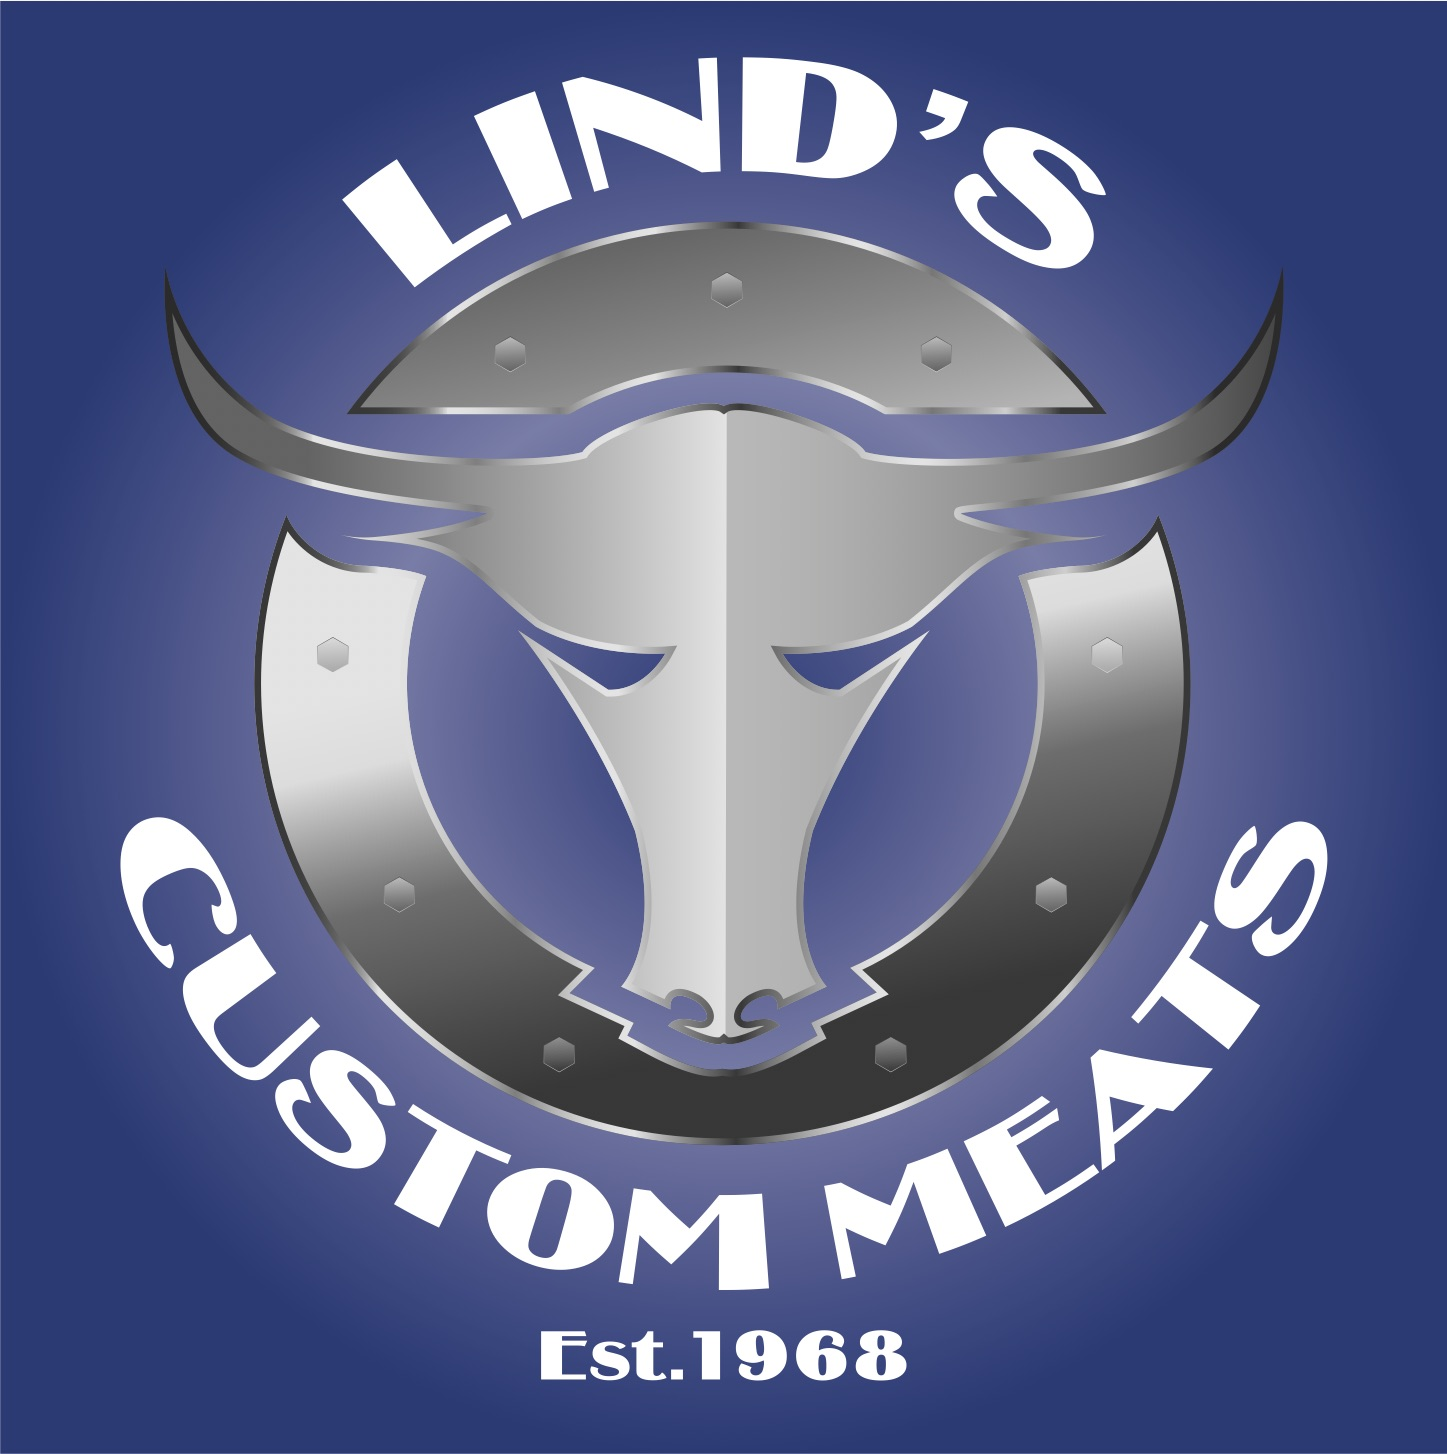 Linds Custom Meats